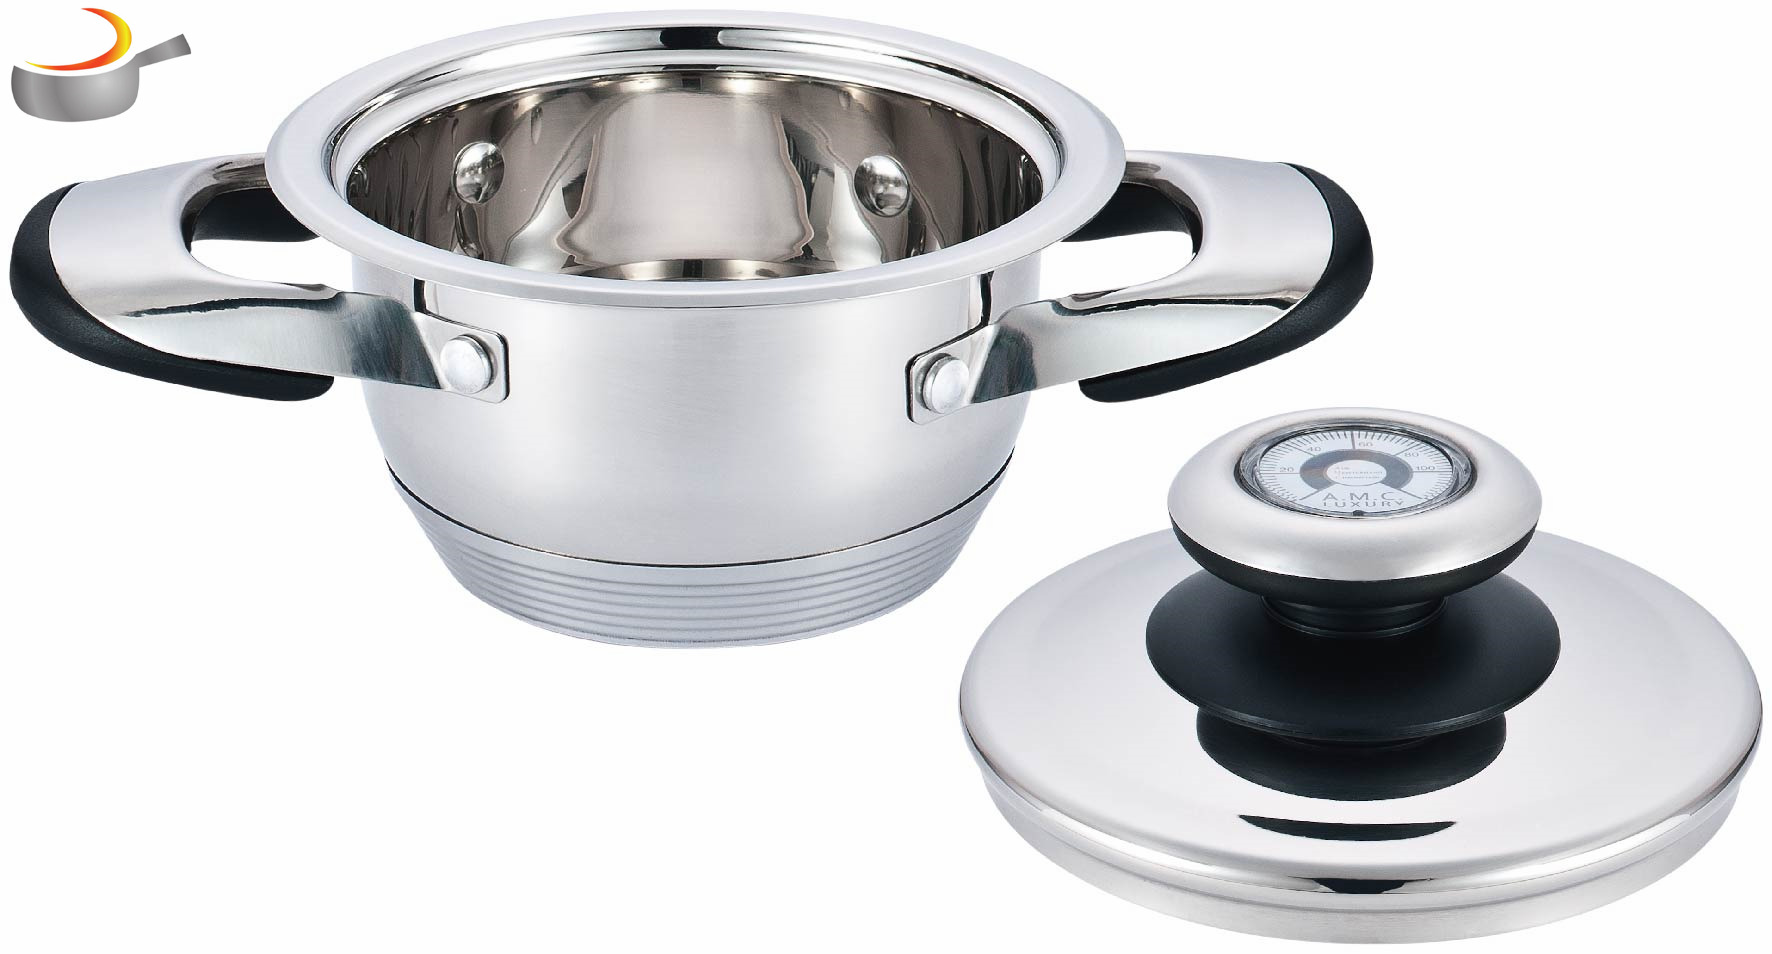 Hot sale 24pcs surgical stainless steel induction kitchen cookware set cooking pot